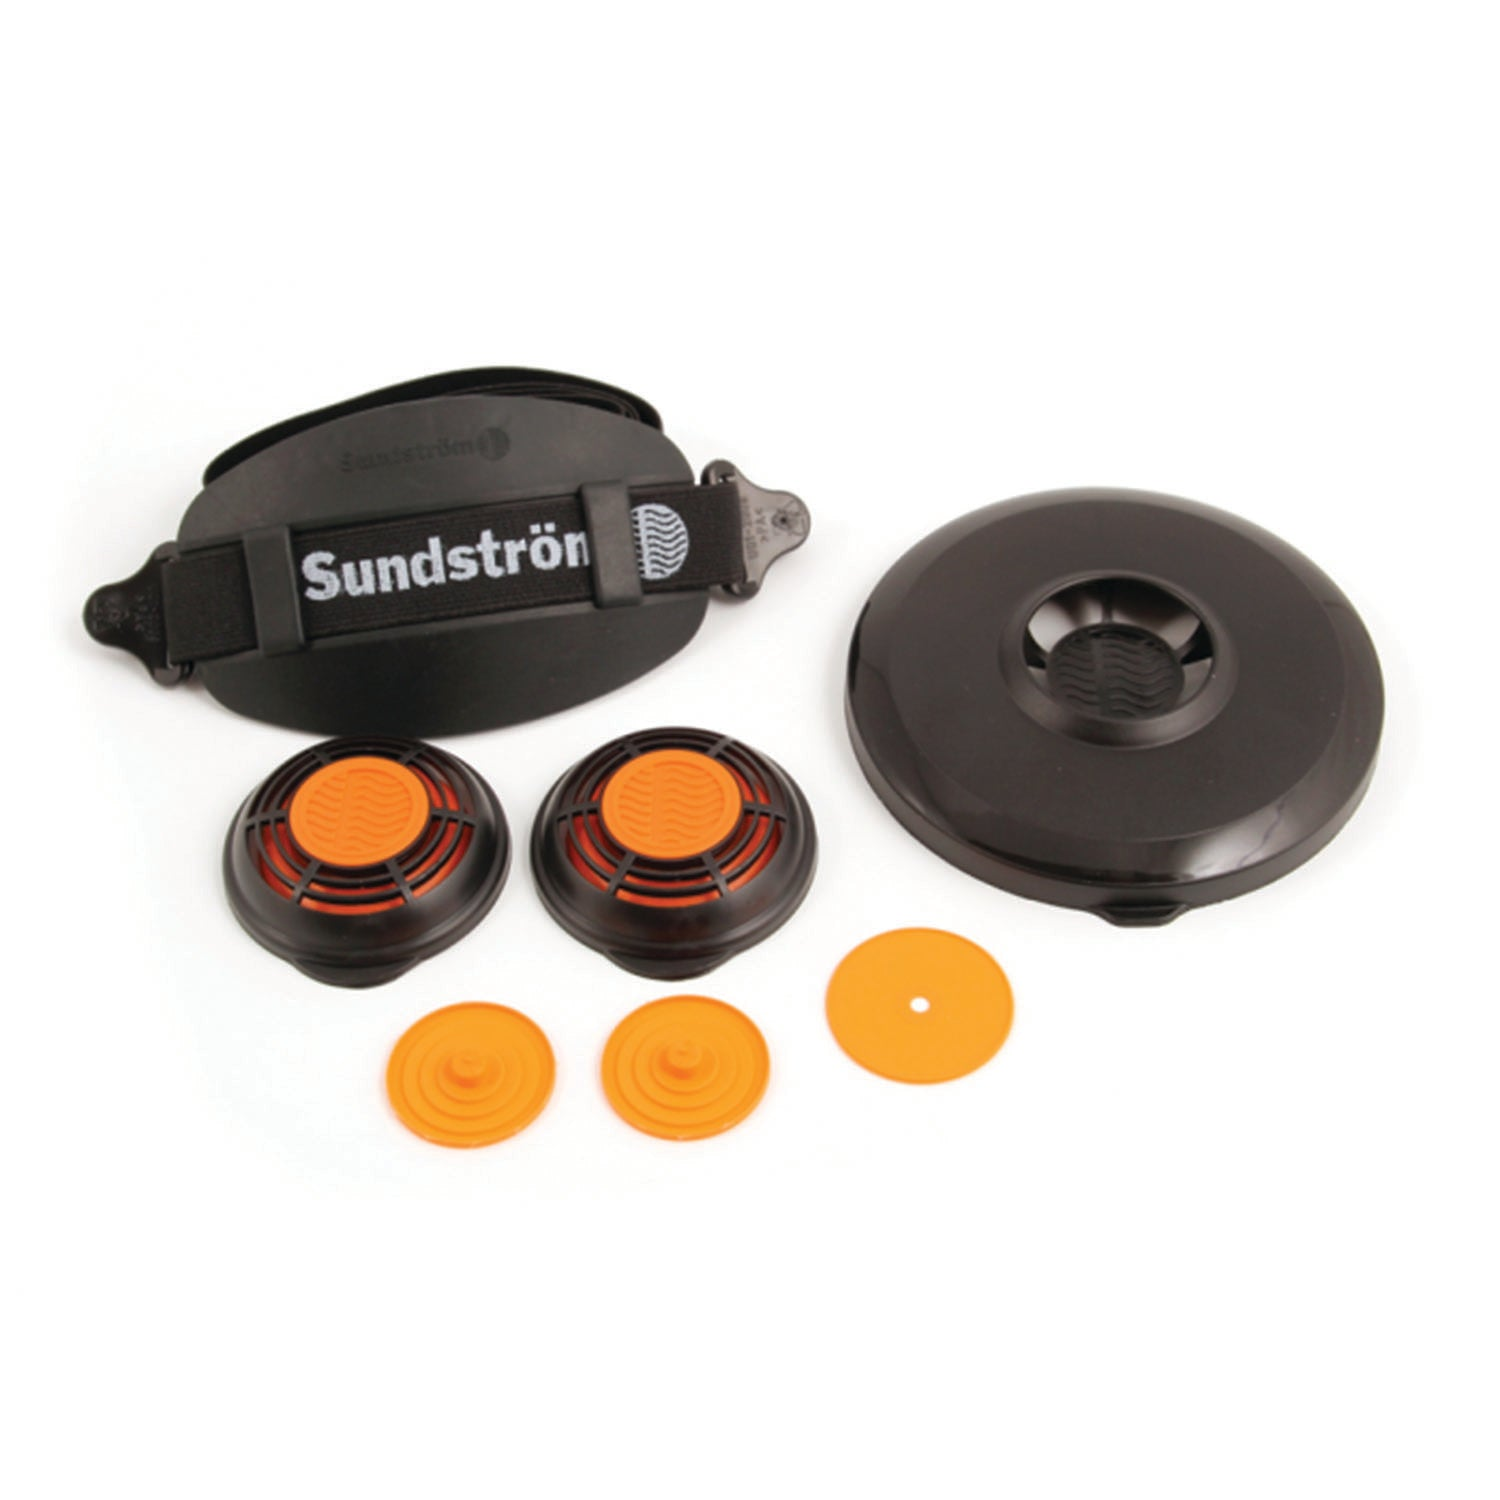 Sundstrom SERVICE KIT for SR100/SR90-3 Masks [R01-2005]